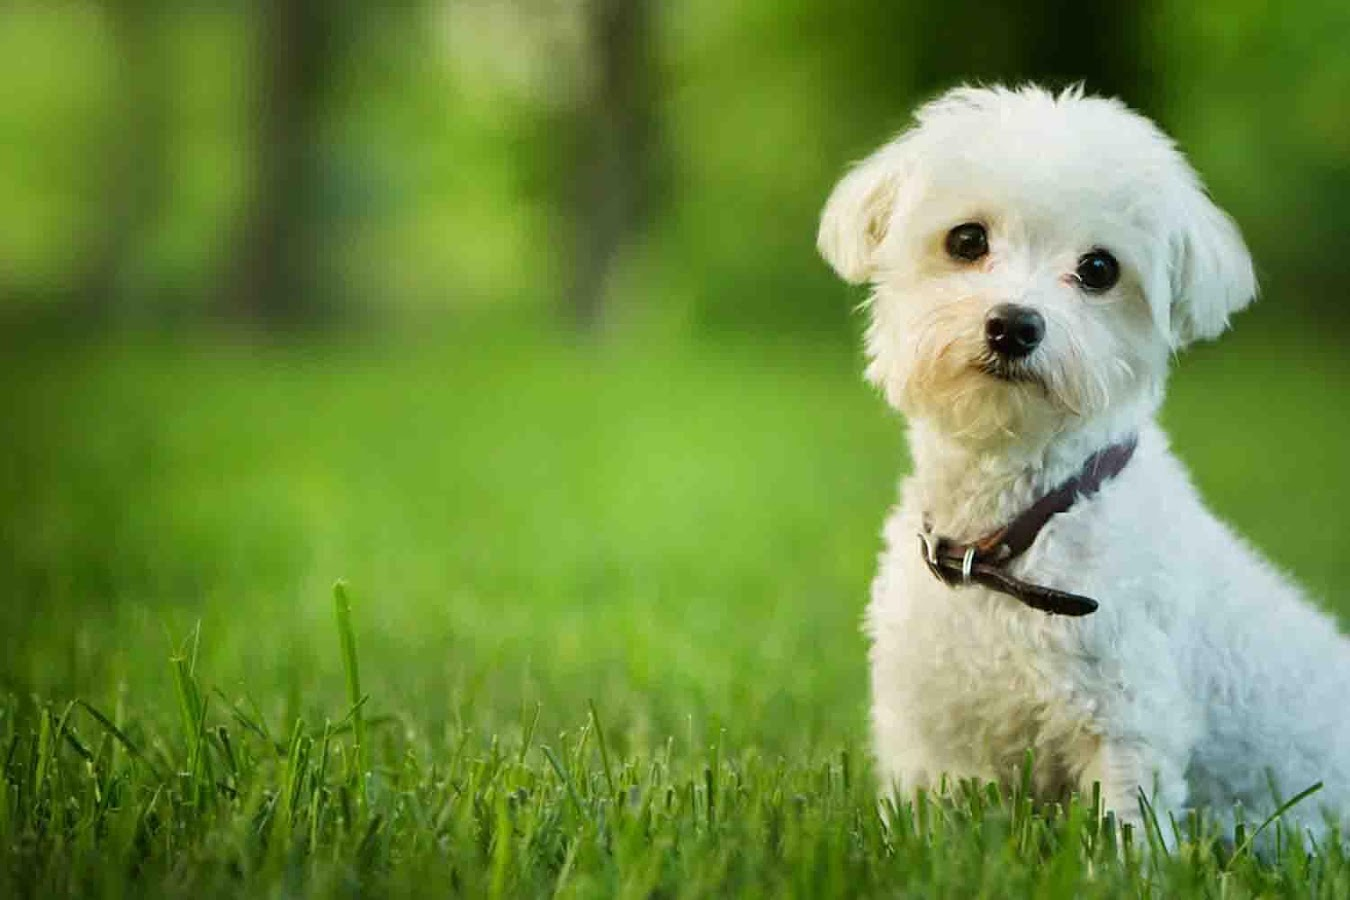 Dogs Wallpaper white dog wallpaper - android apps on google play